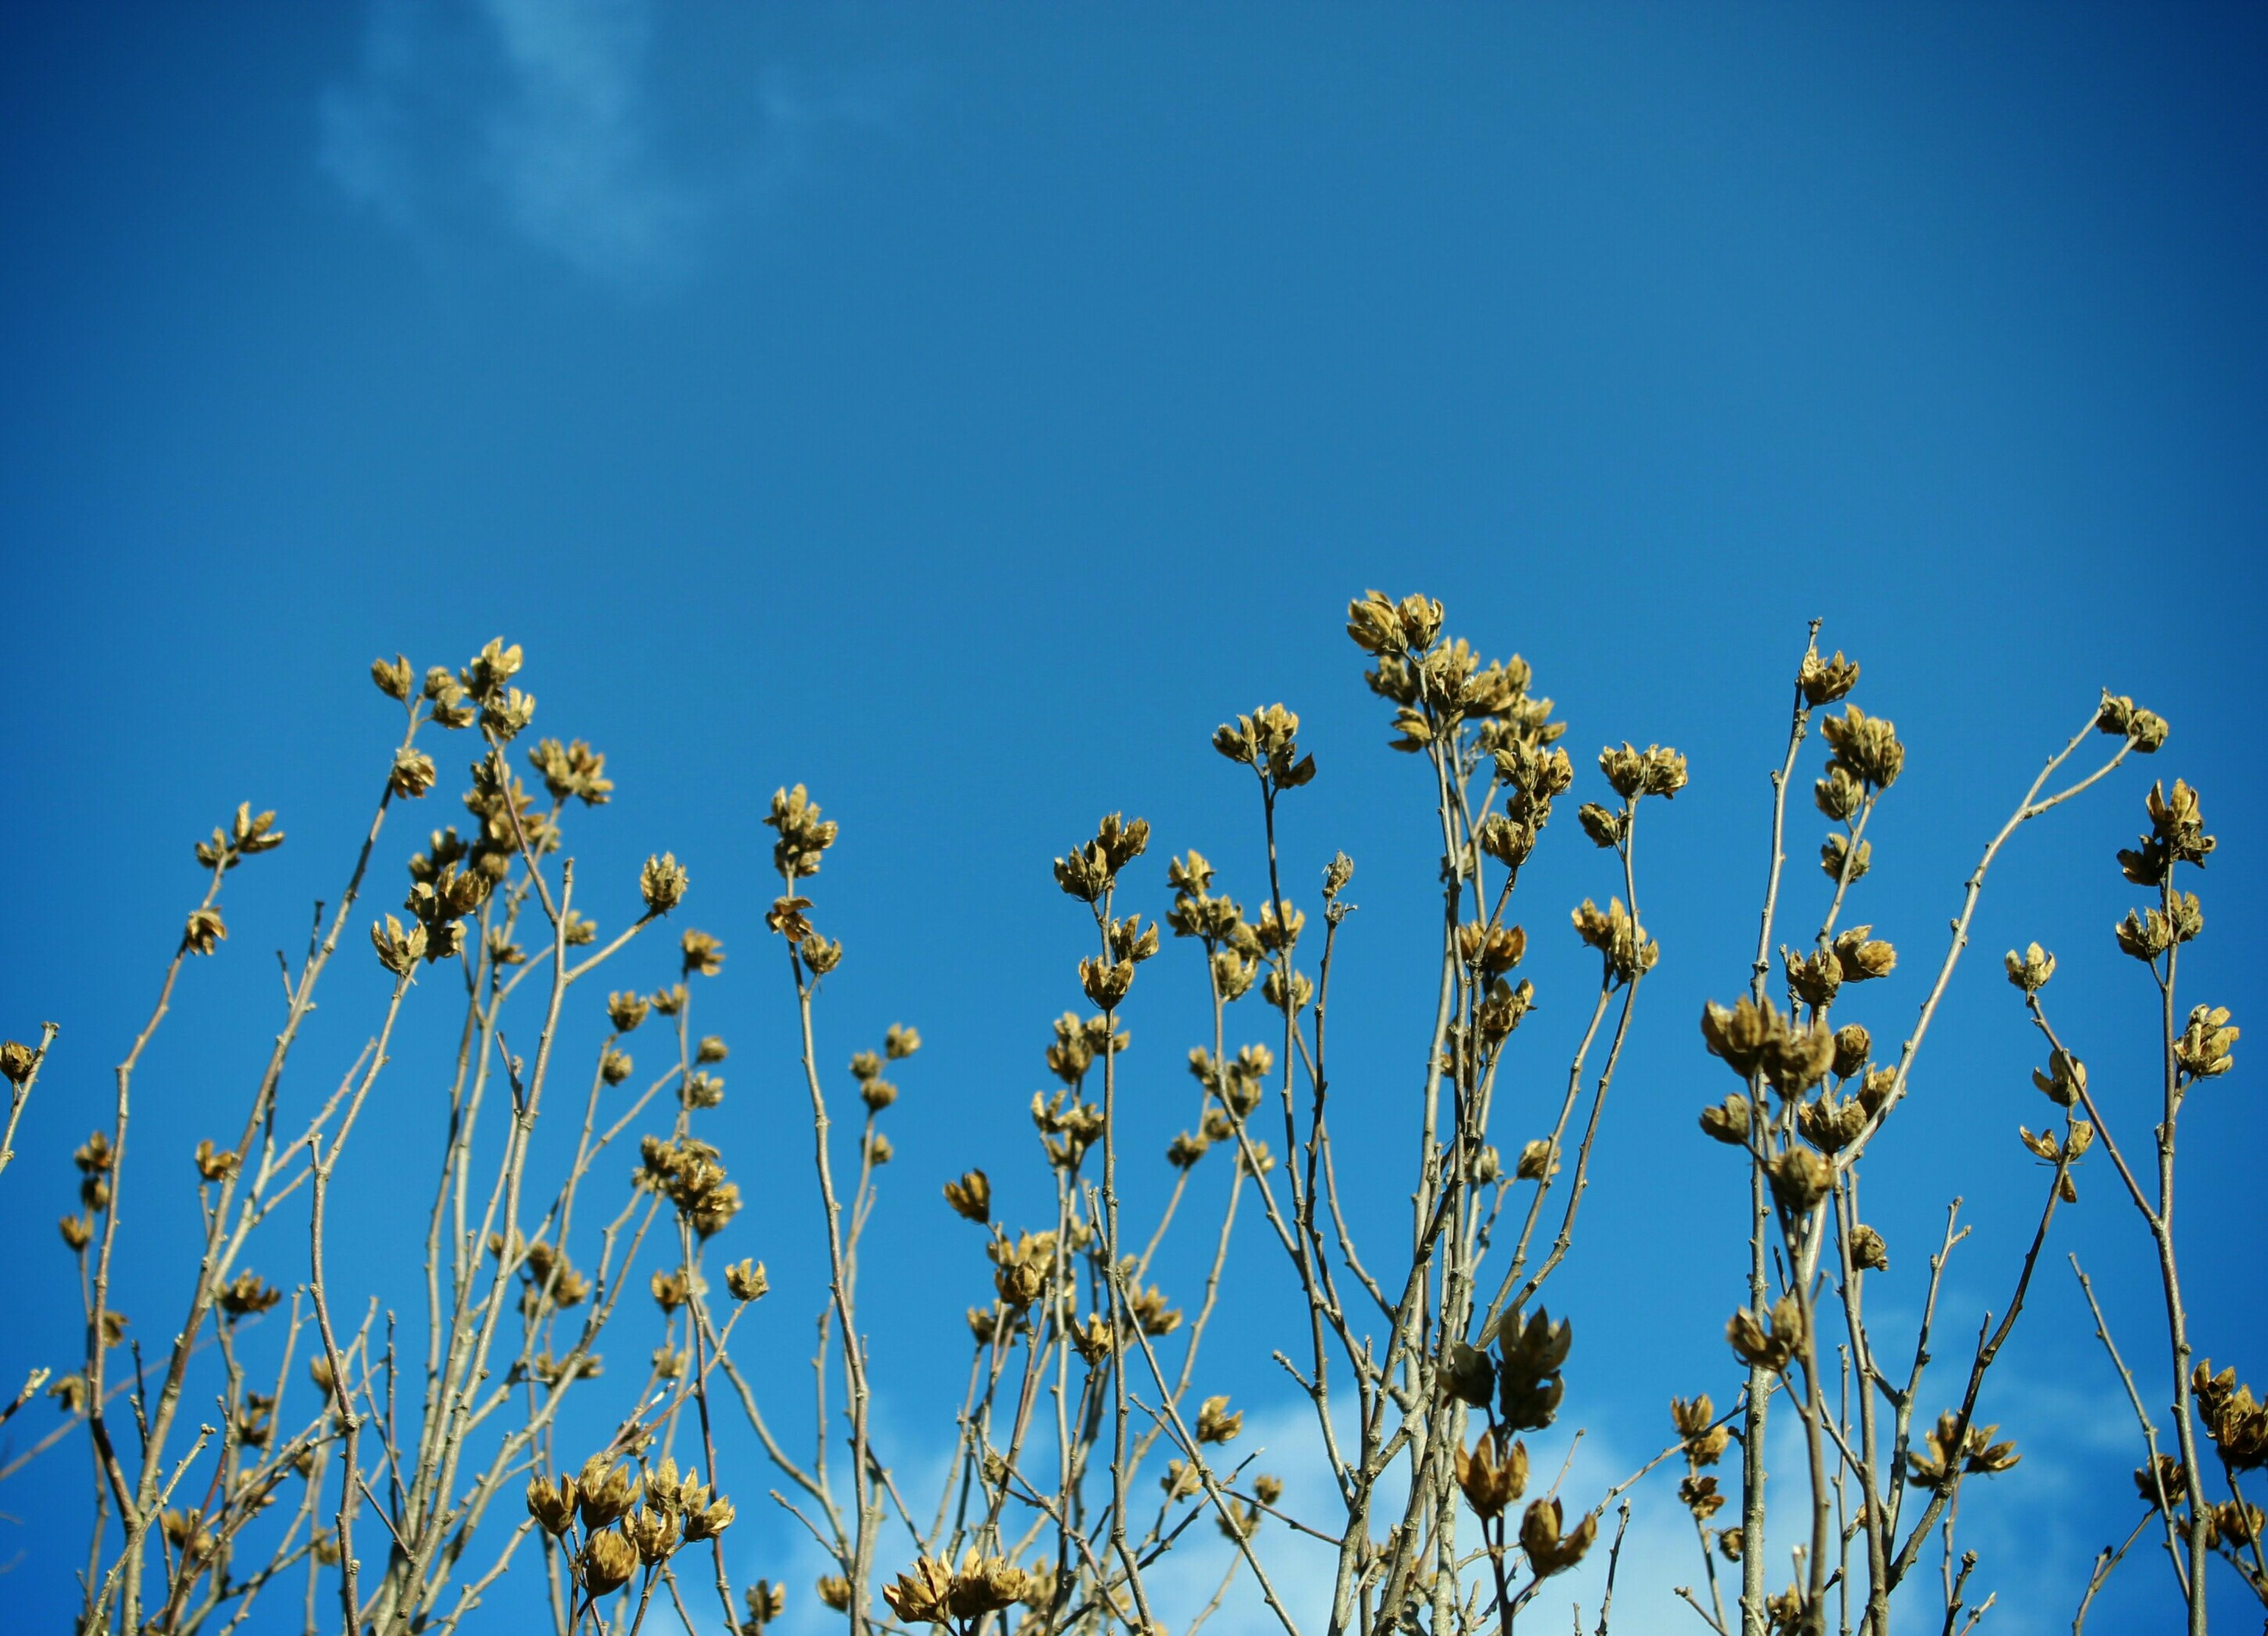 blue, clear sky, low angle view, growth, copy space, nature, beauty in nature, flower, plant, freshness, leaf, sky, tranquility, branch, high section, outdoors, day, no people, tree, stem